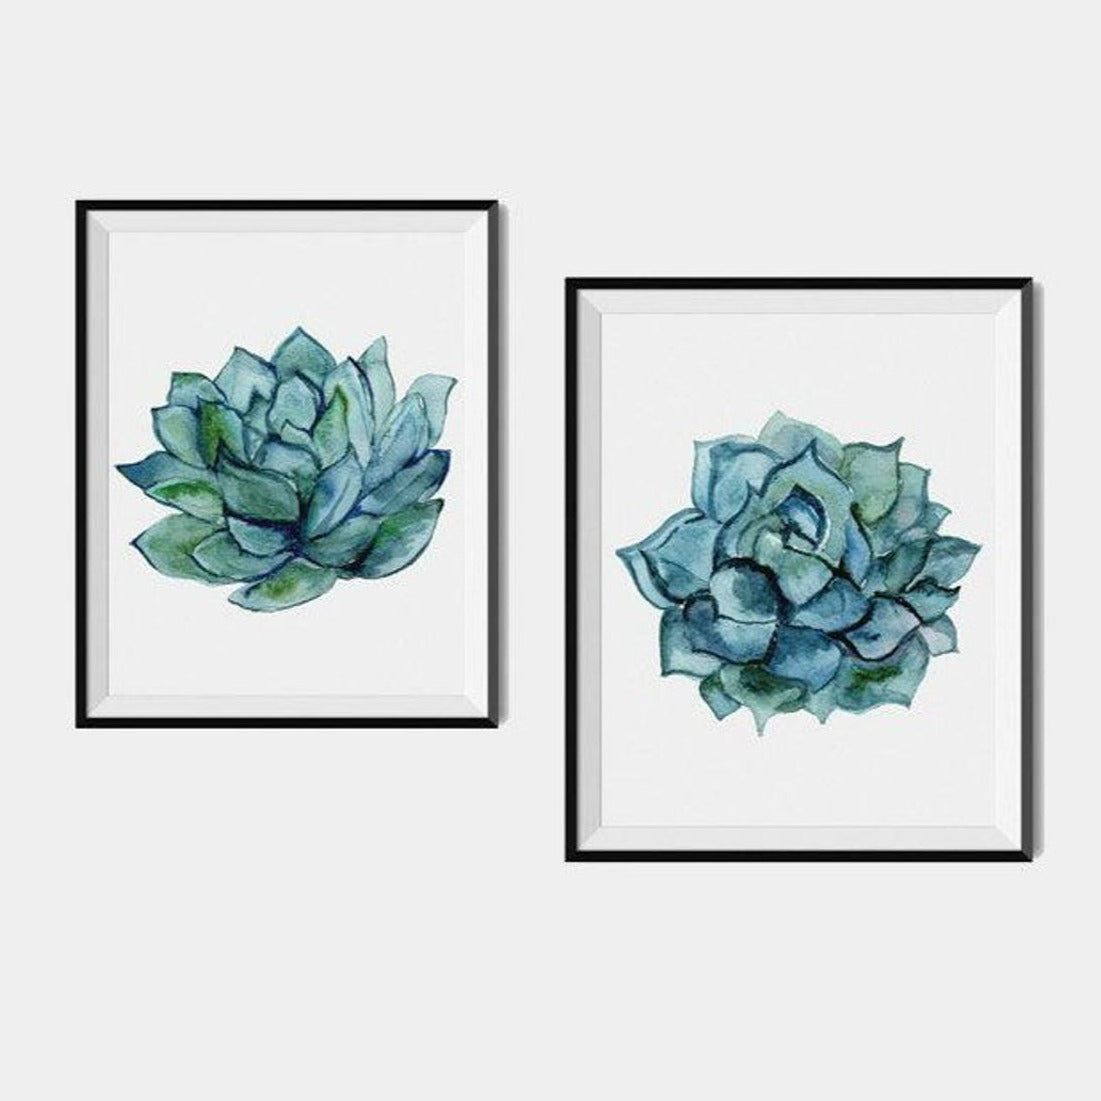 Succulent Wall Art, Cactus Art Print Set of 2 Prints